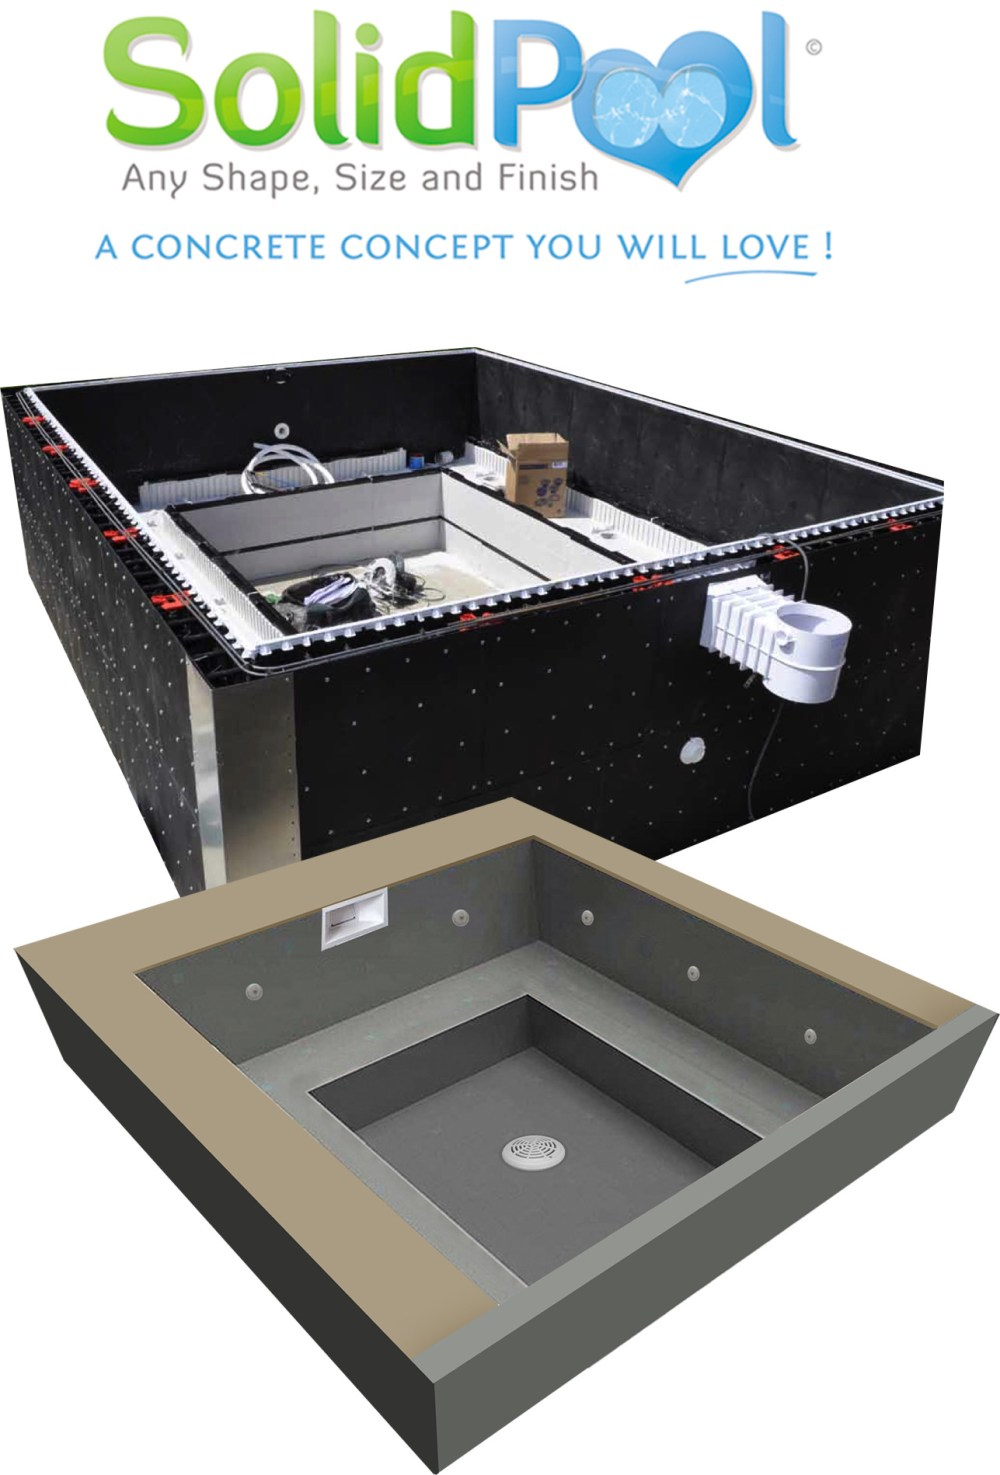 medium resolution of please get in touch so we can discuss your requirements and put together a package to create your dream hot tub